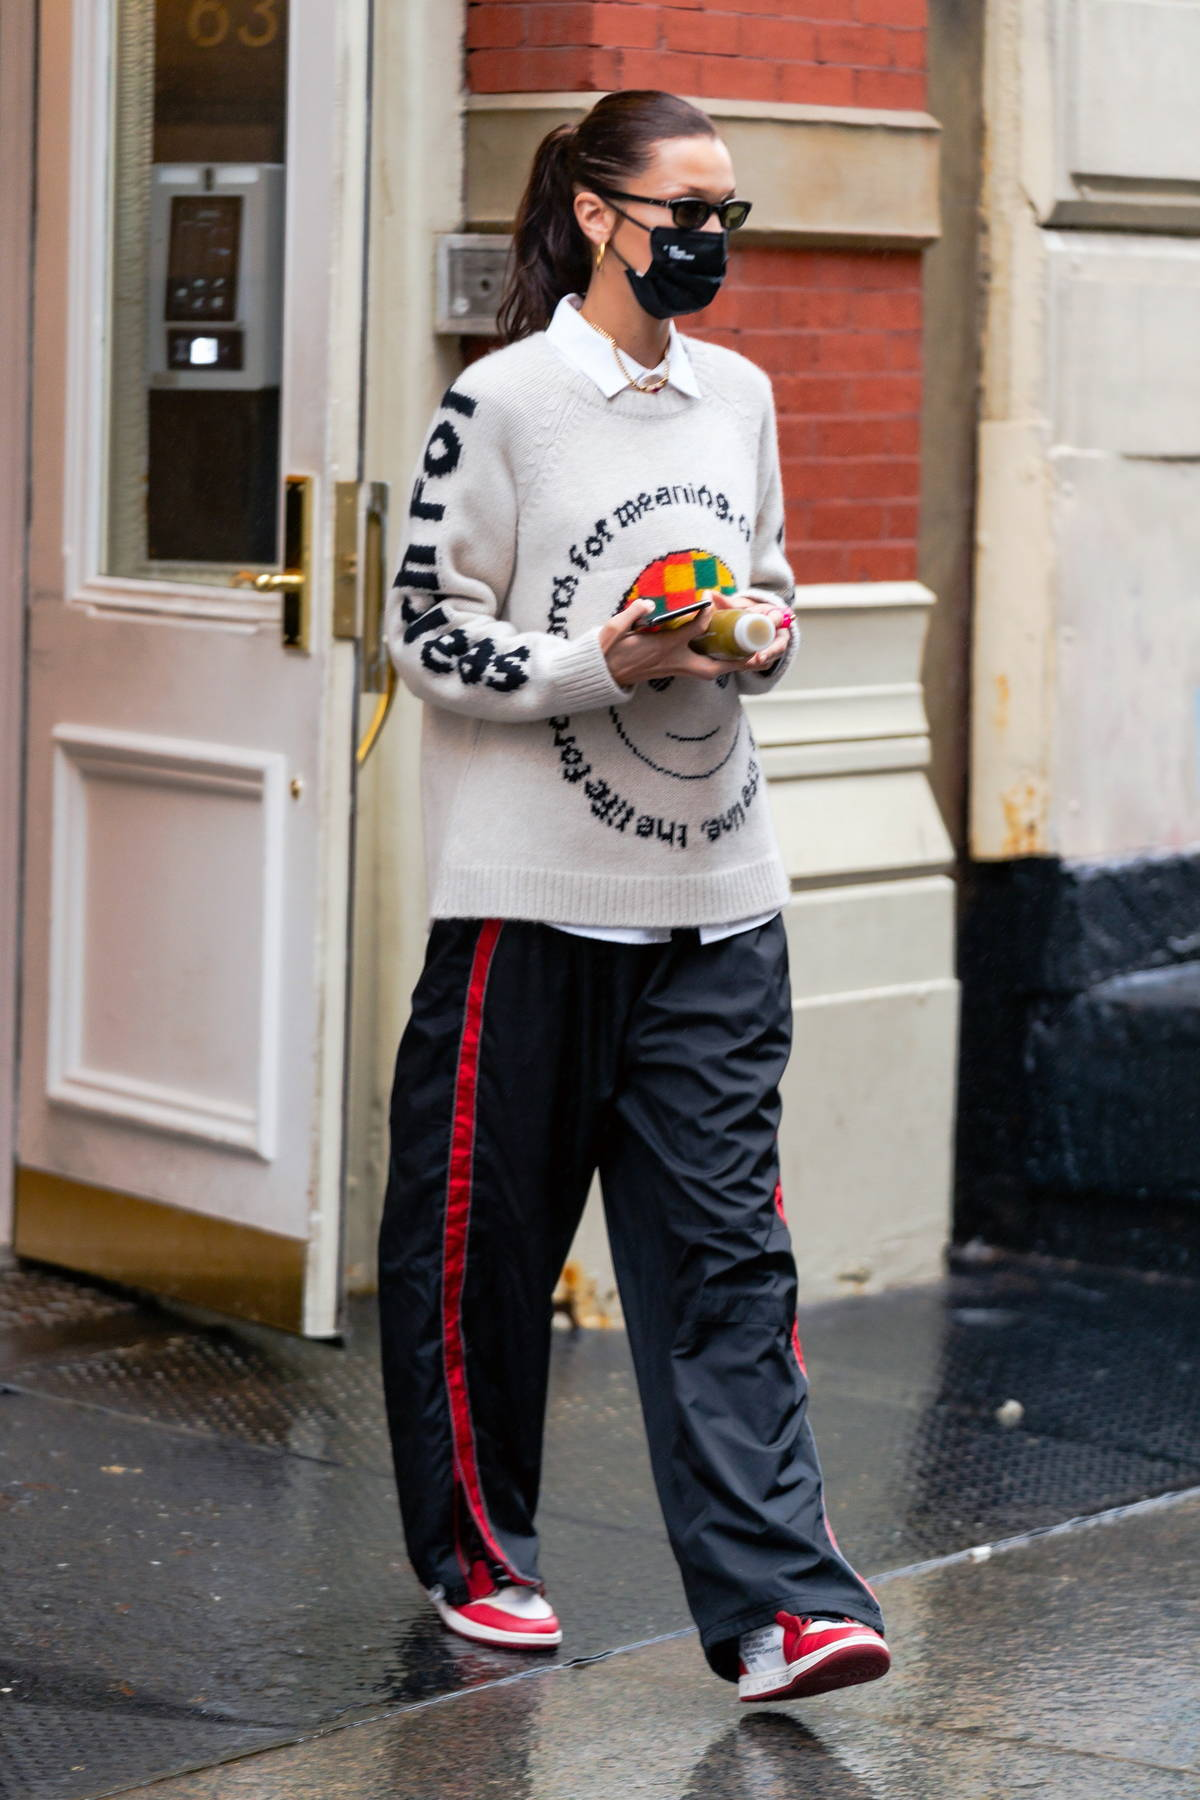 Bella Hadid looks cool in a sweater with a message as she leaves her apartment in New York City